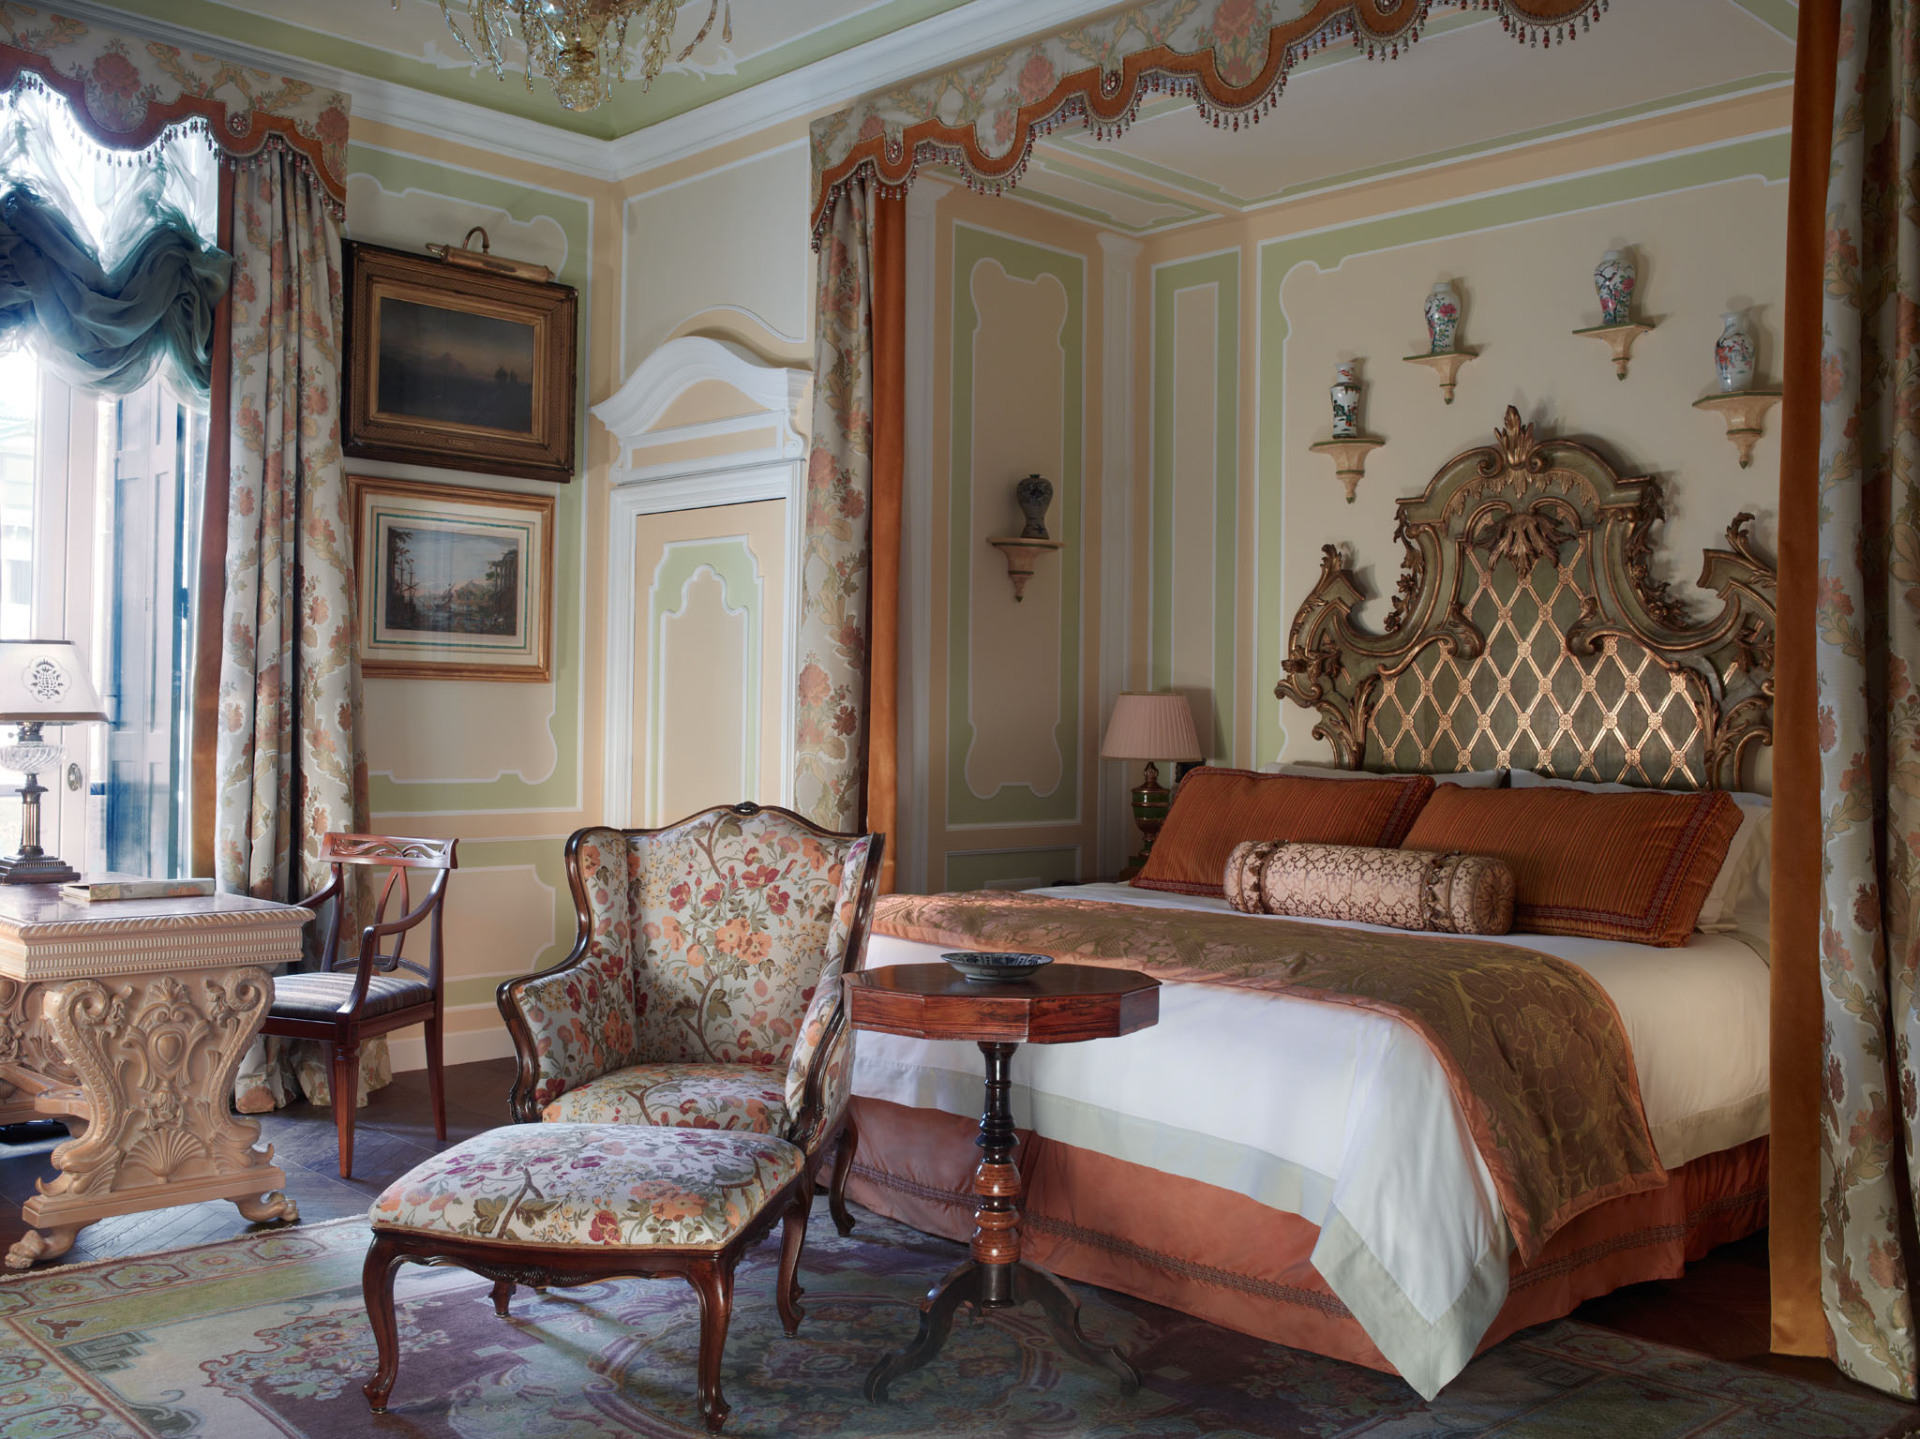 The Gritti Palace The Ernest Hemingway Suite